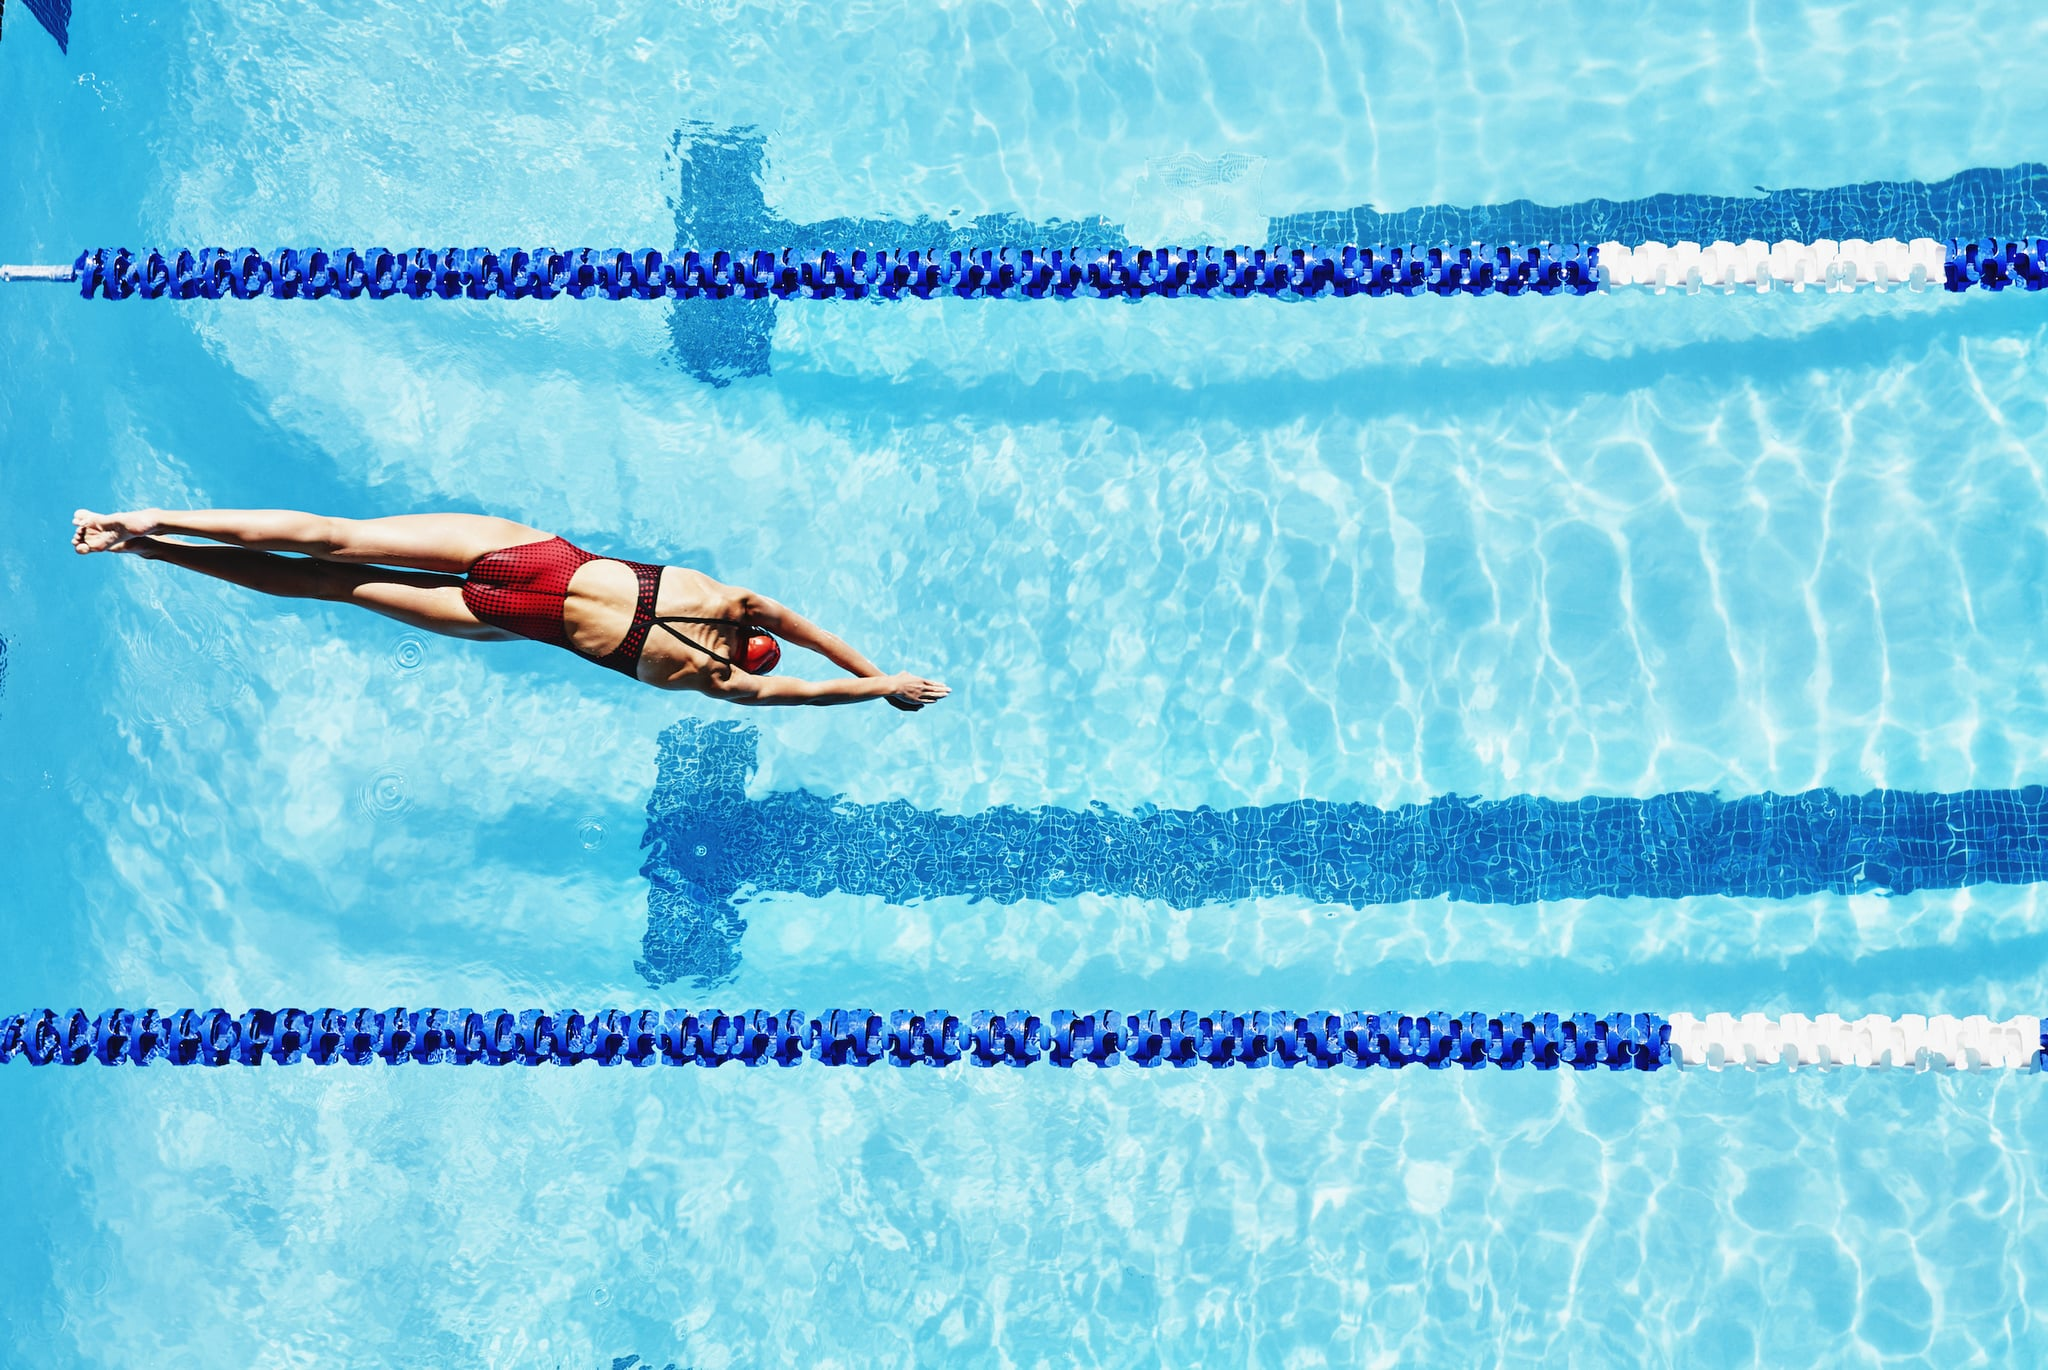 Female competitive swimmer diving into outdoor pool overhead view